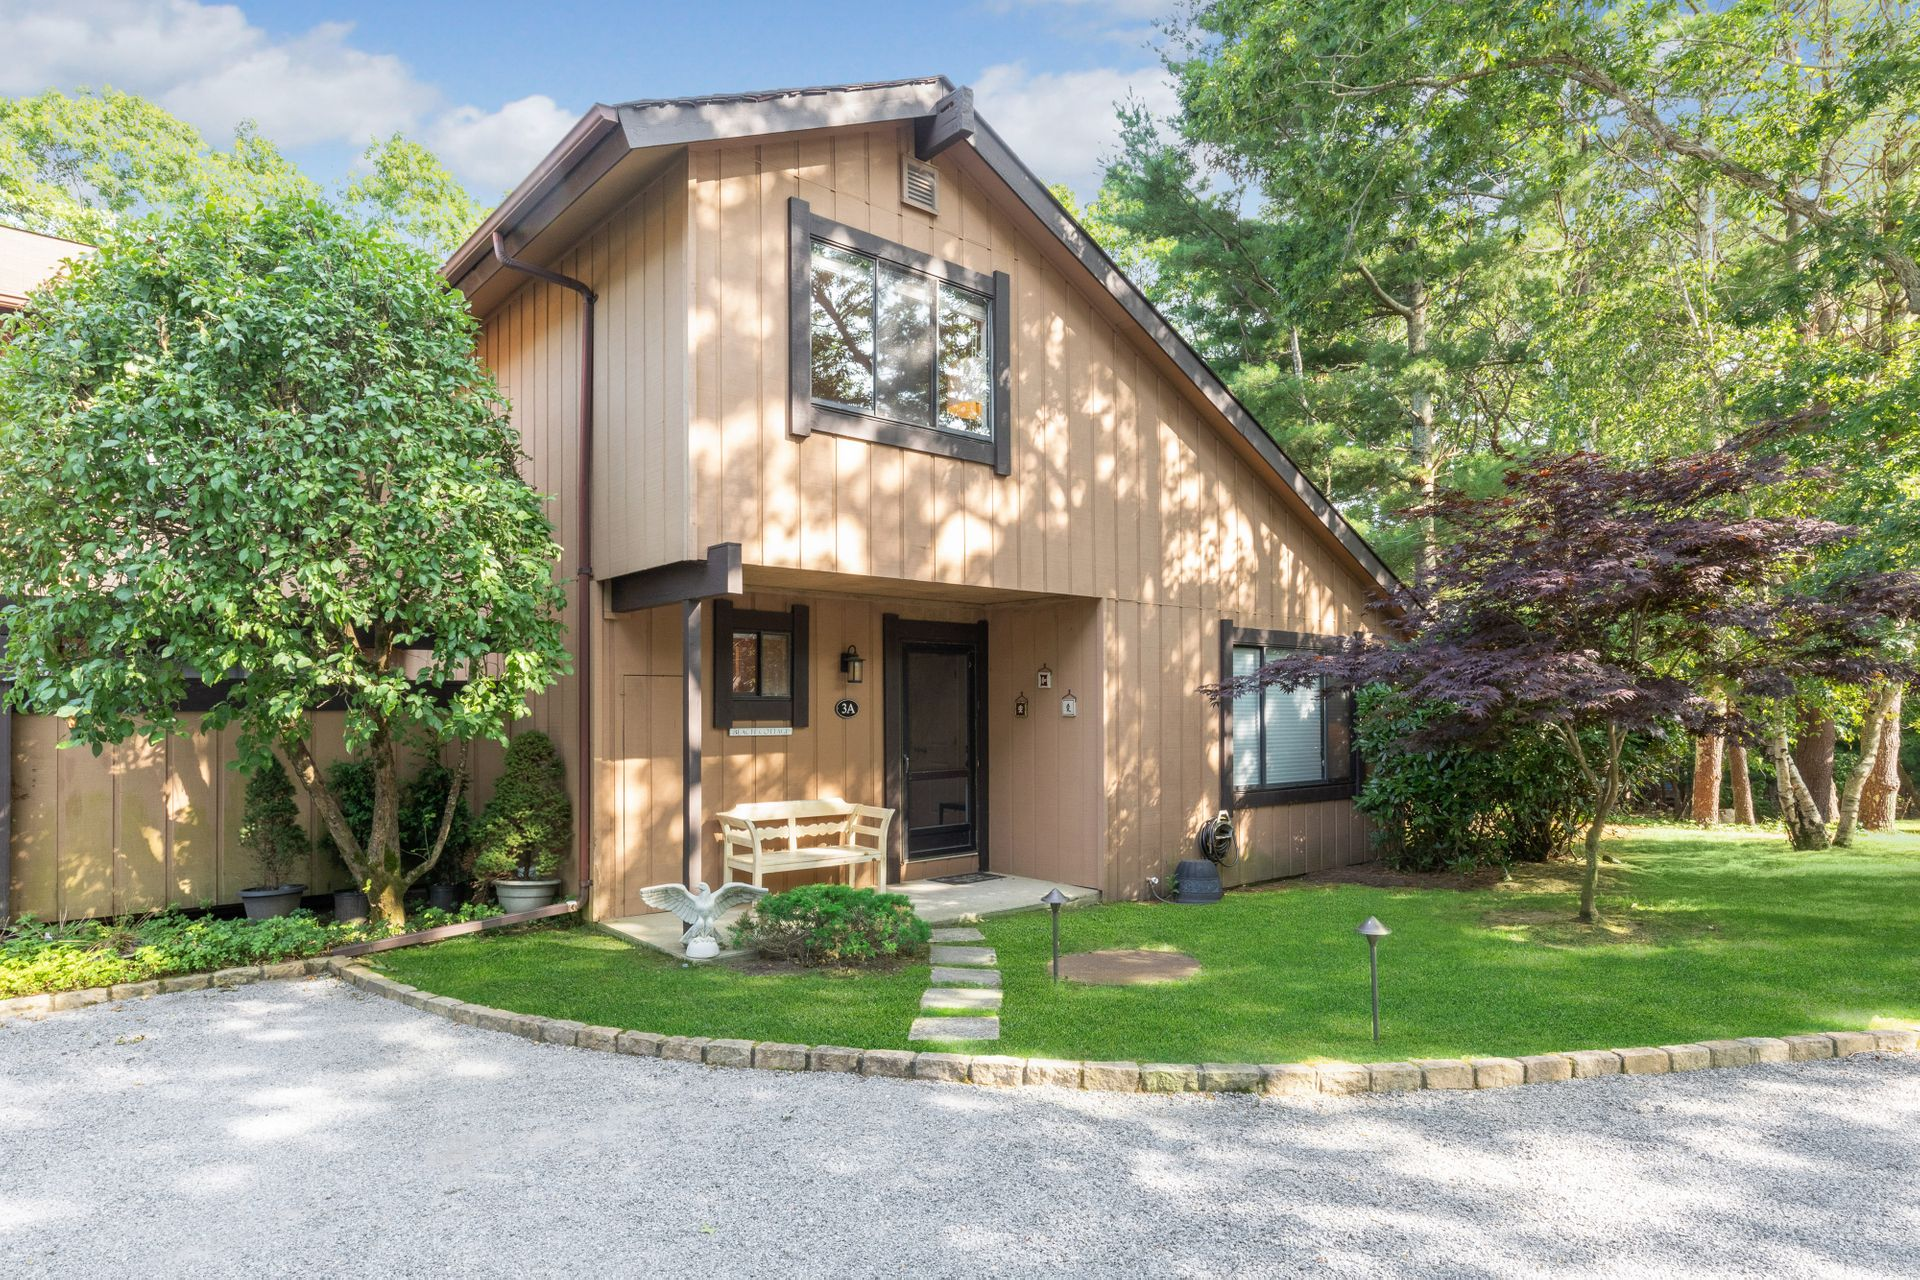 194 Treescape Dr - East Hampton NW, New York